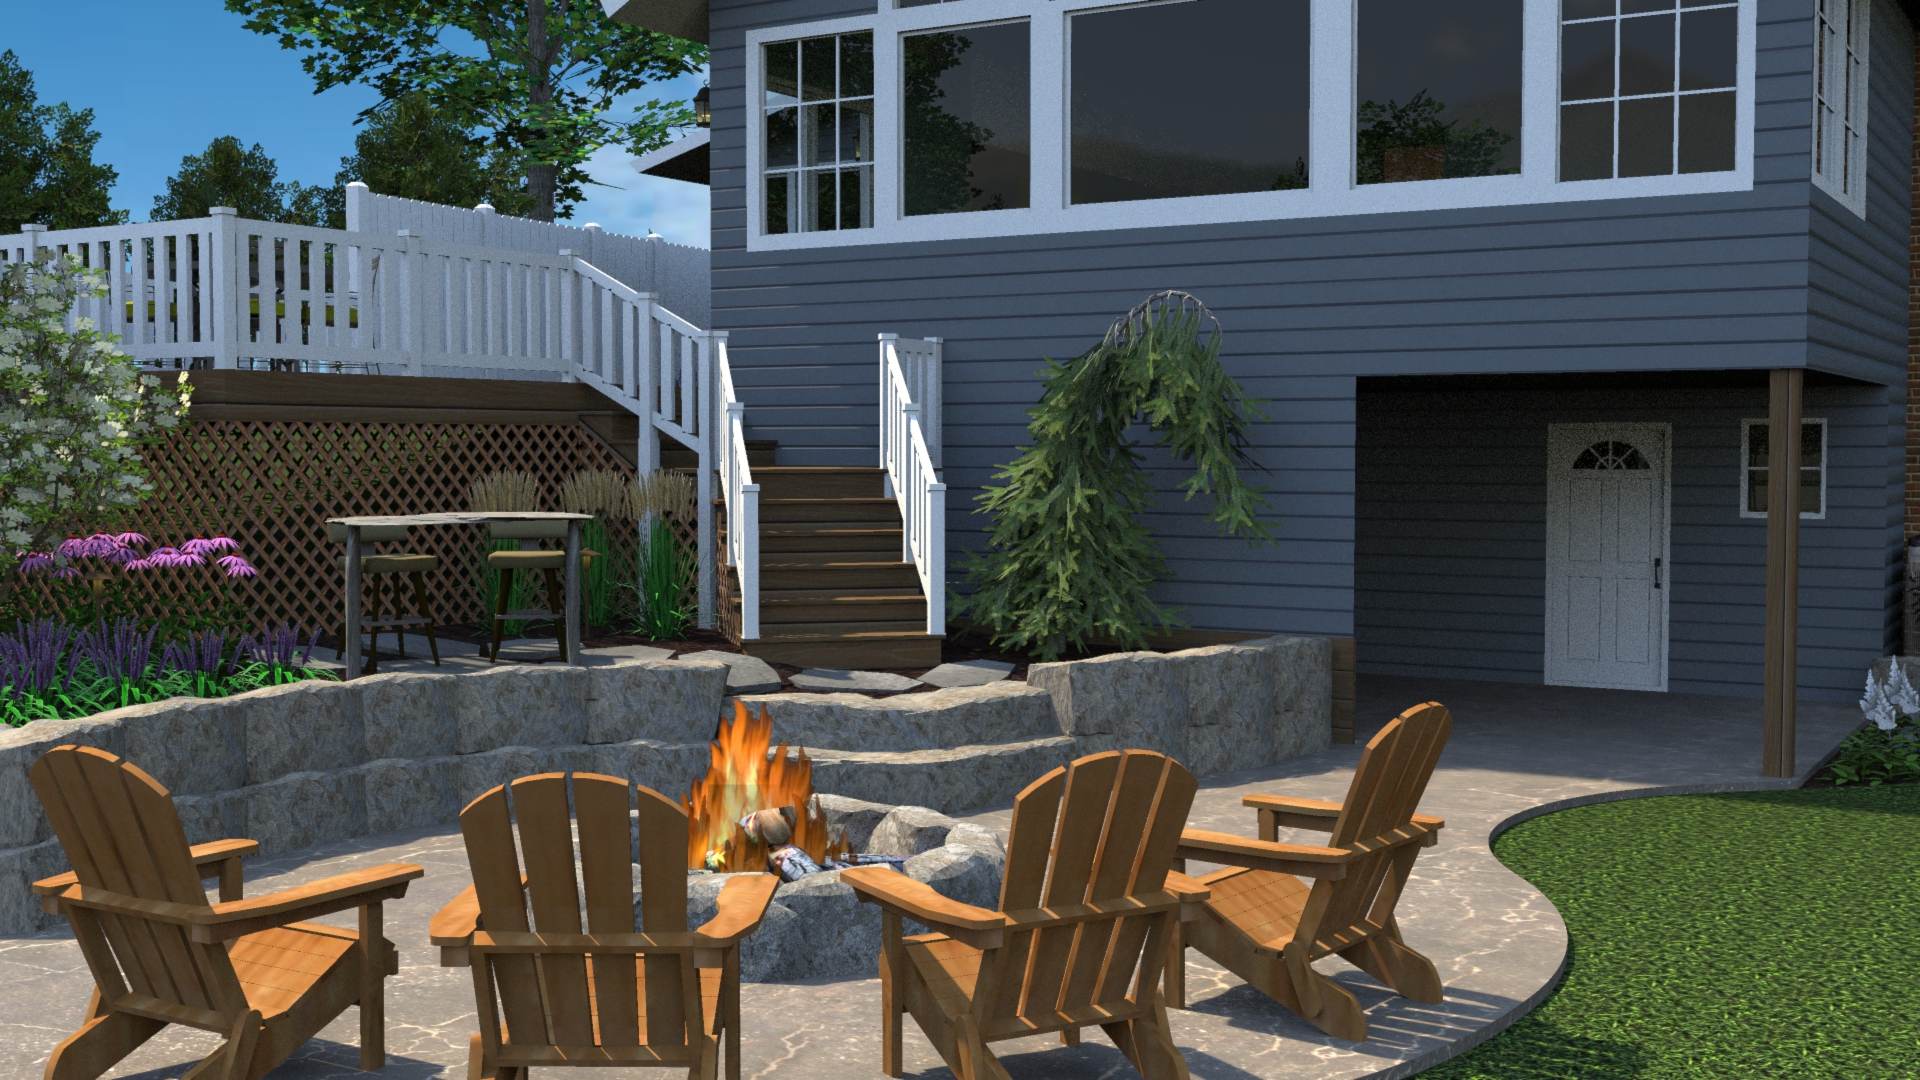 Richland Landscaping Patio Fire Pit Deck Retaining Wall Steps Pine Lake